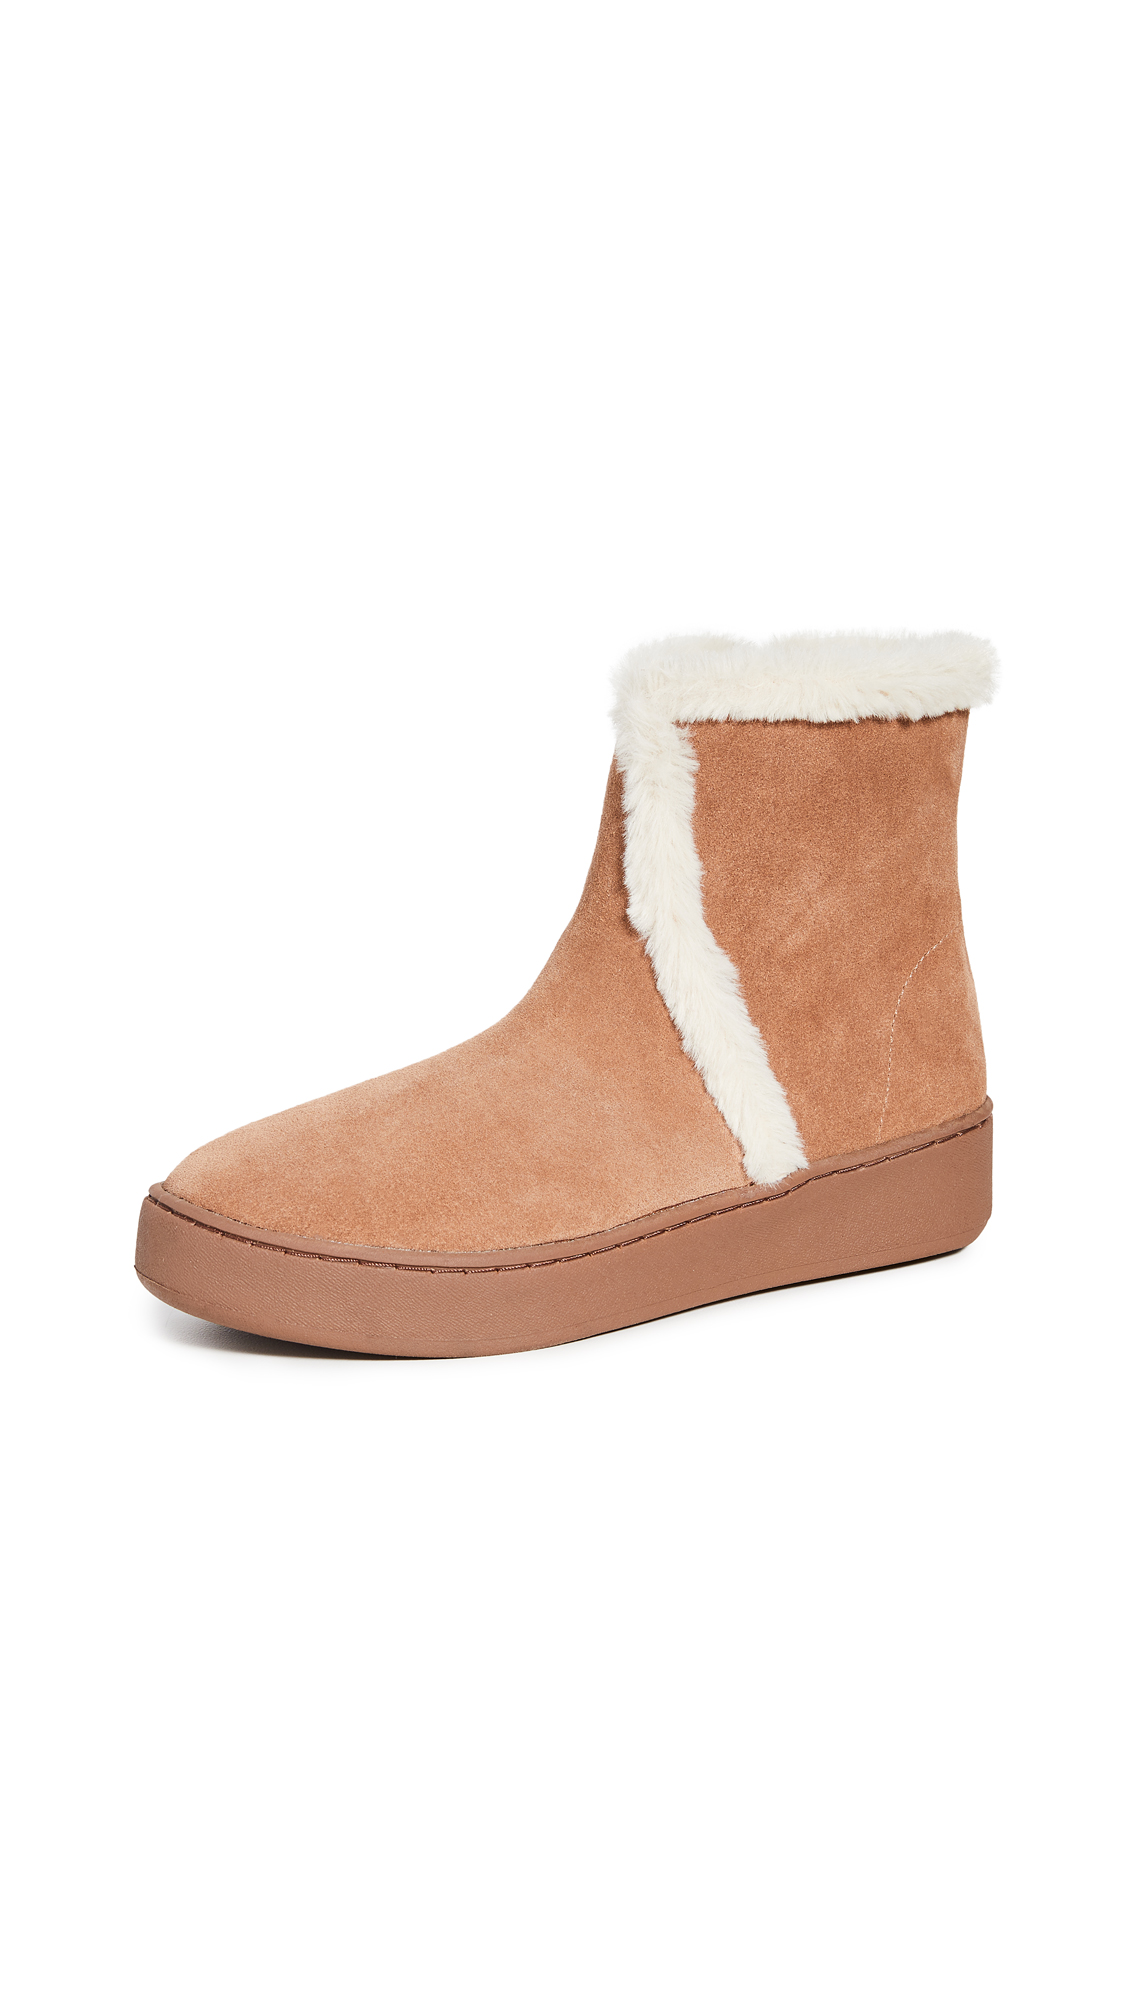 Soludos Whistler Cozy Boots - 50% Off Sale